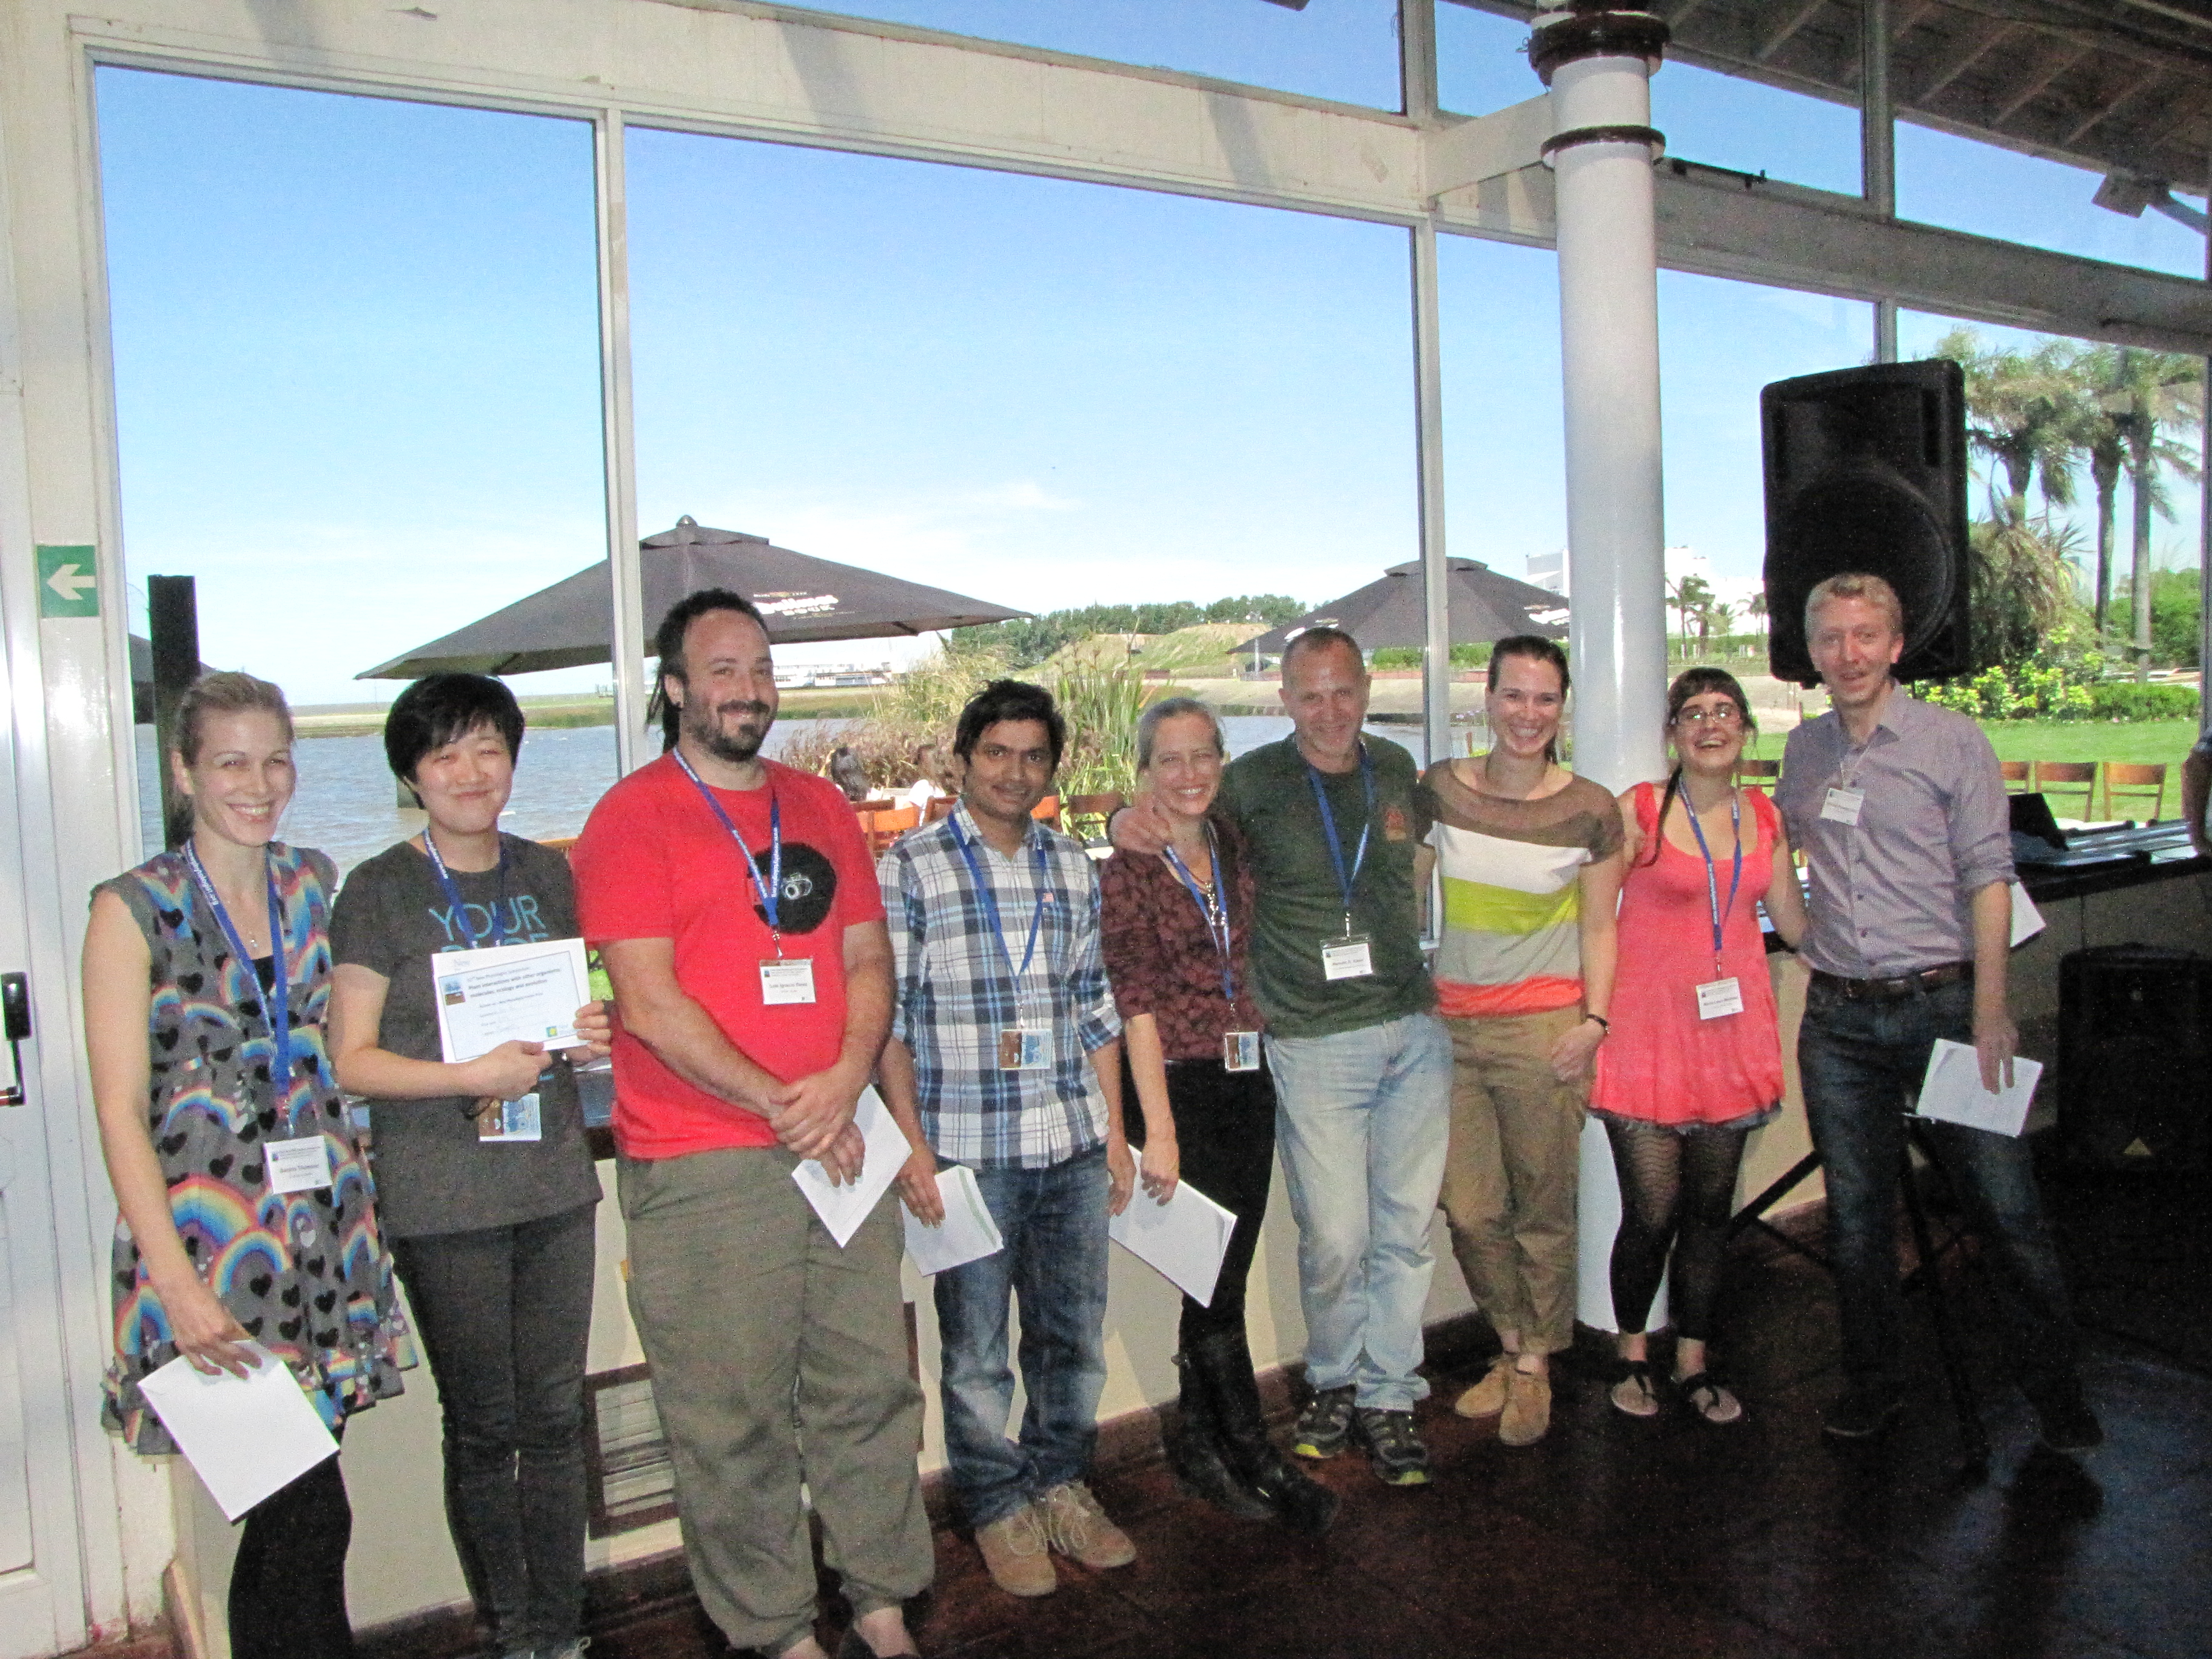 32nd New Phytologist Symposium student poster prize winners